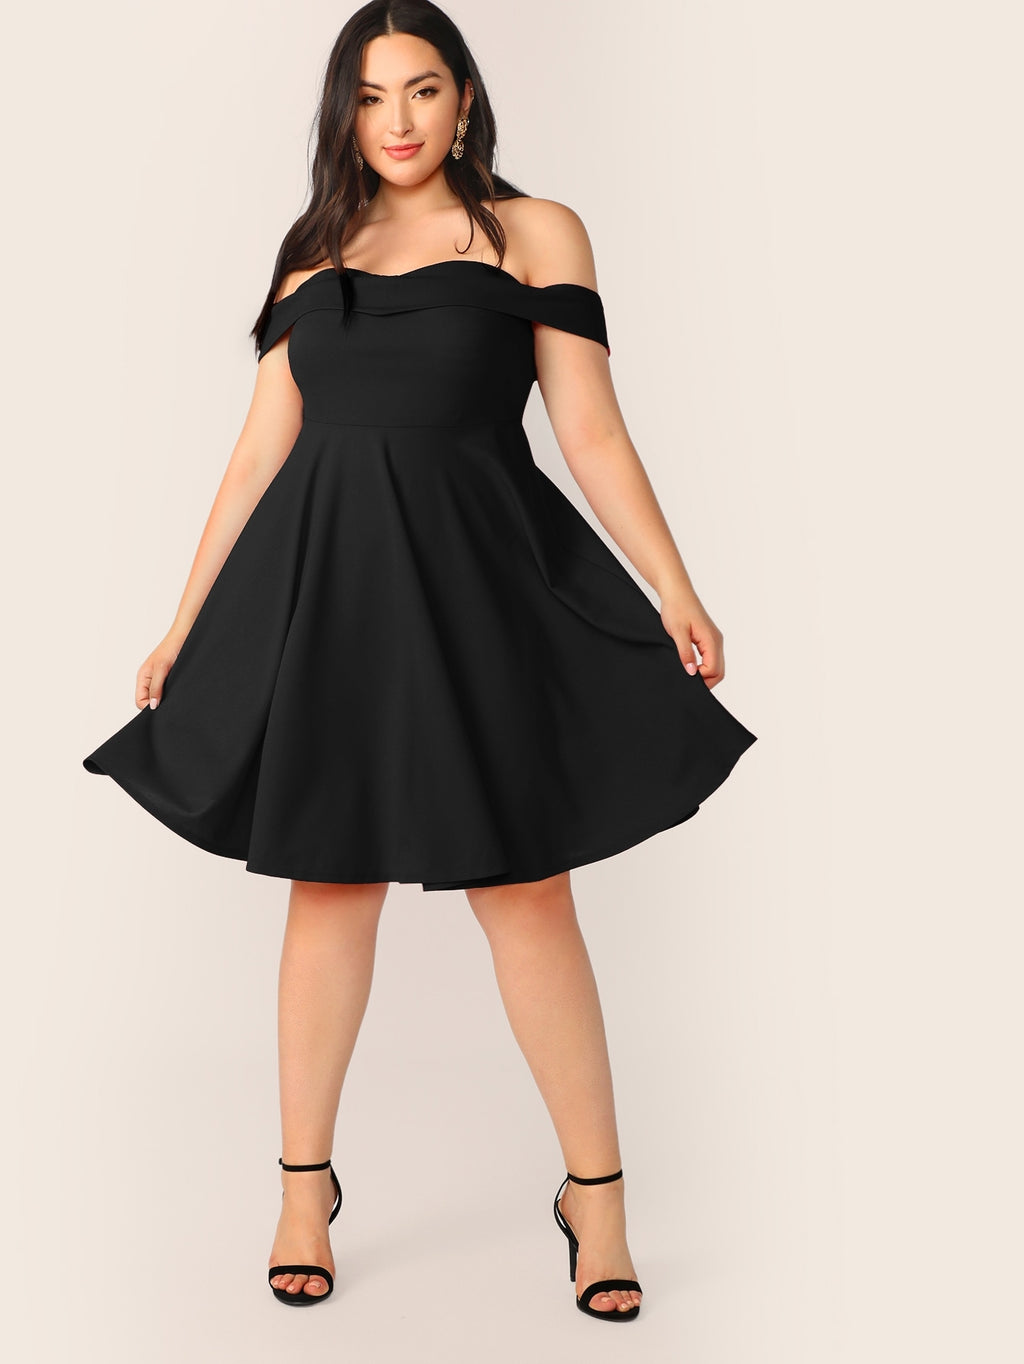 Plus Size Adorable Off Shoulder Skater Dress